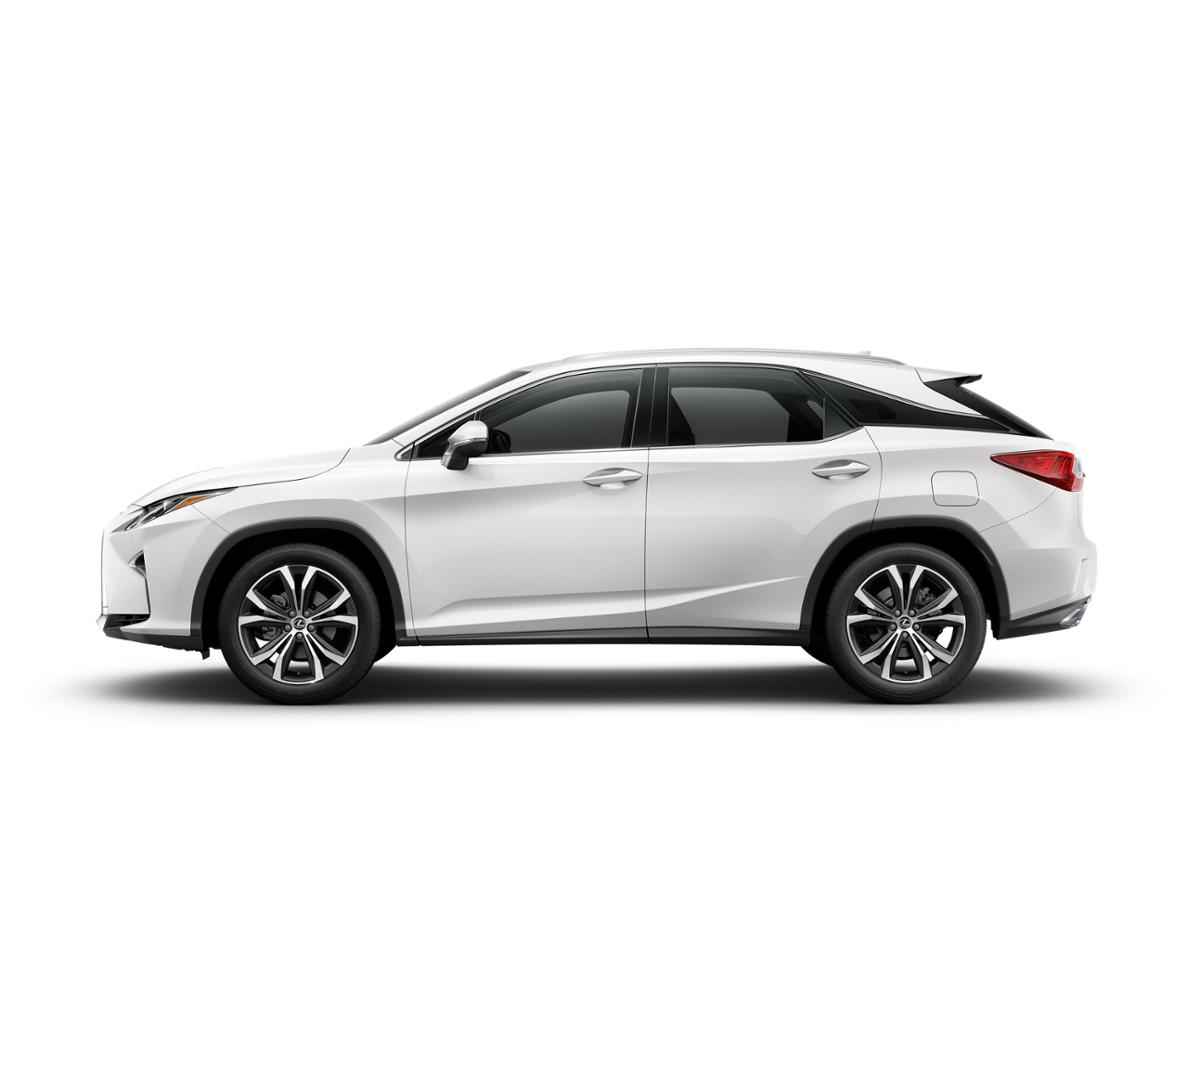 towson eminent white pearl 2018 lexus rx 350 new suv for sale y21079. Black Bedroom Furniture Sets. Home Design Ideas